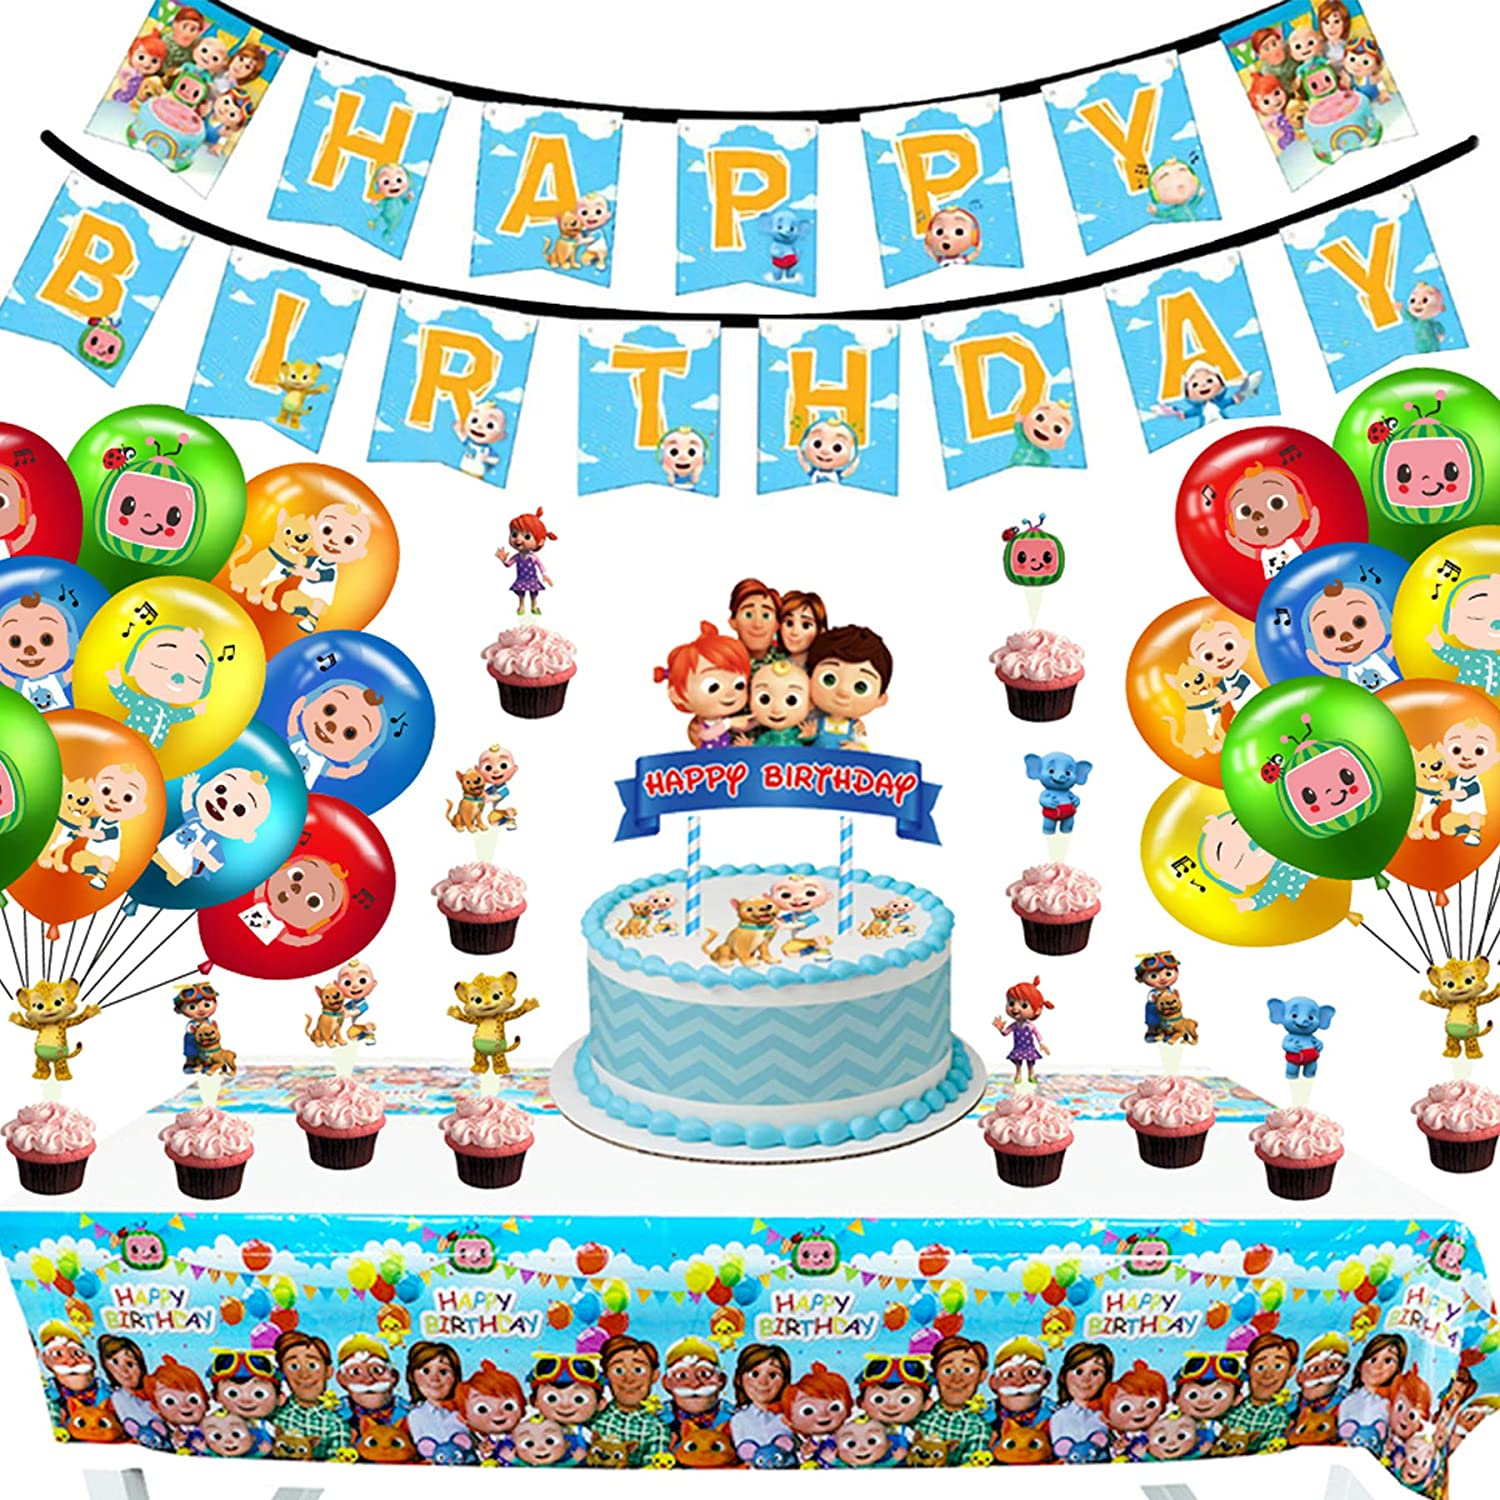 cocomelon Themed Birthday Party Decorations Supplies Set Happy Birthday Banner Cake Topper Cupcake Toppers Balloons for Kids Adults Party Decorations, cocomelons Birthday Party Dessert Set